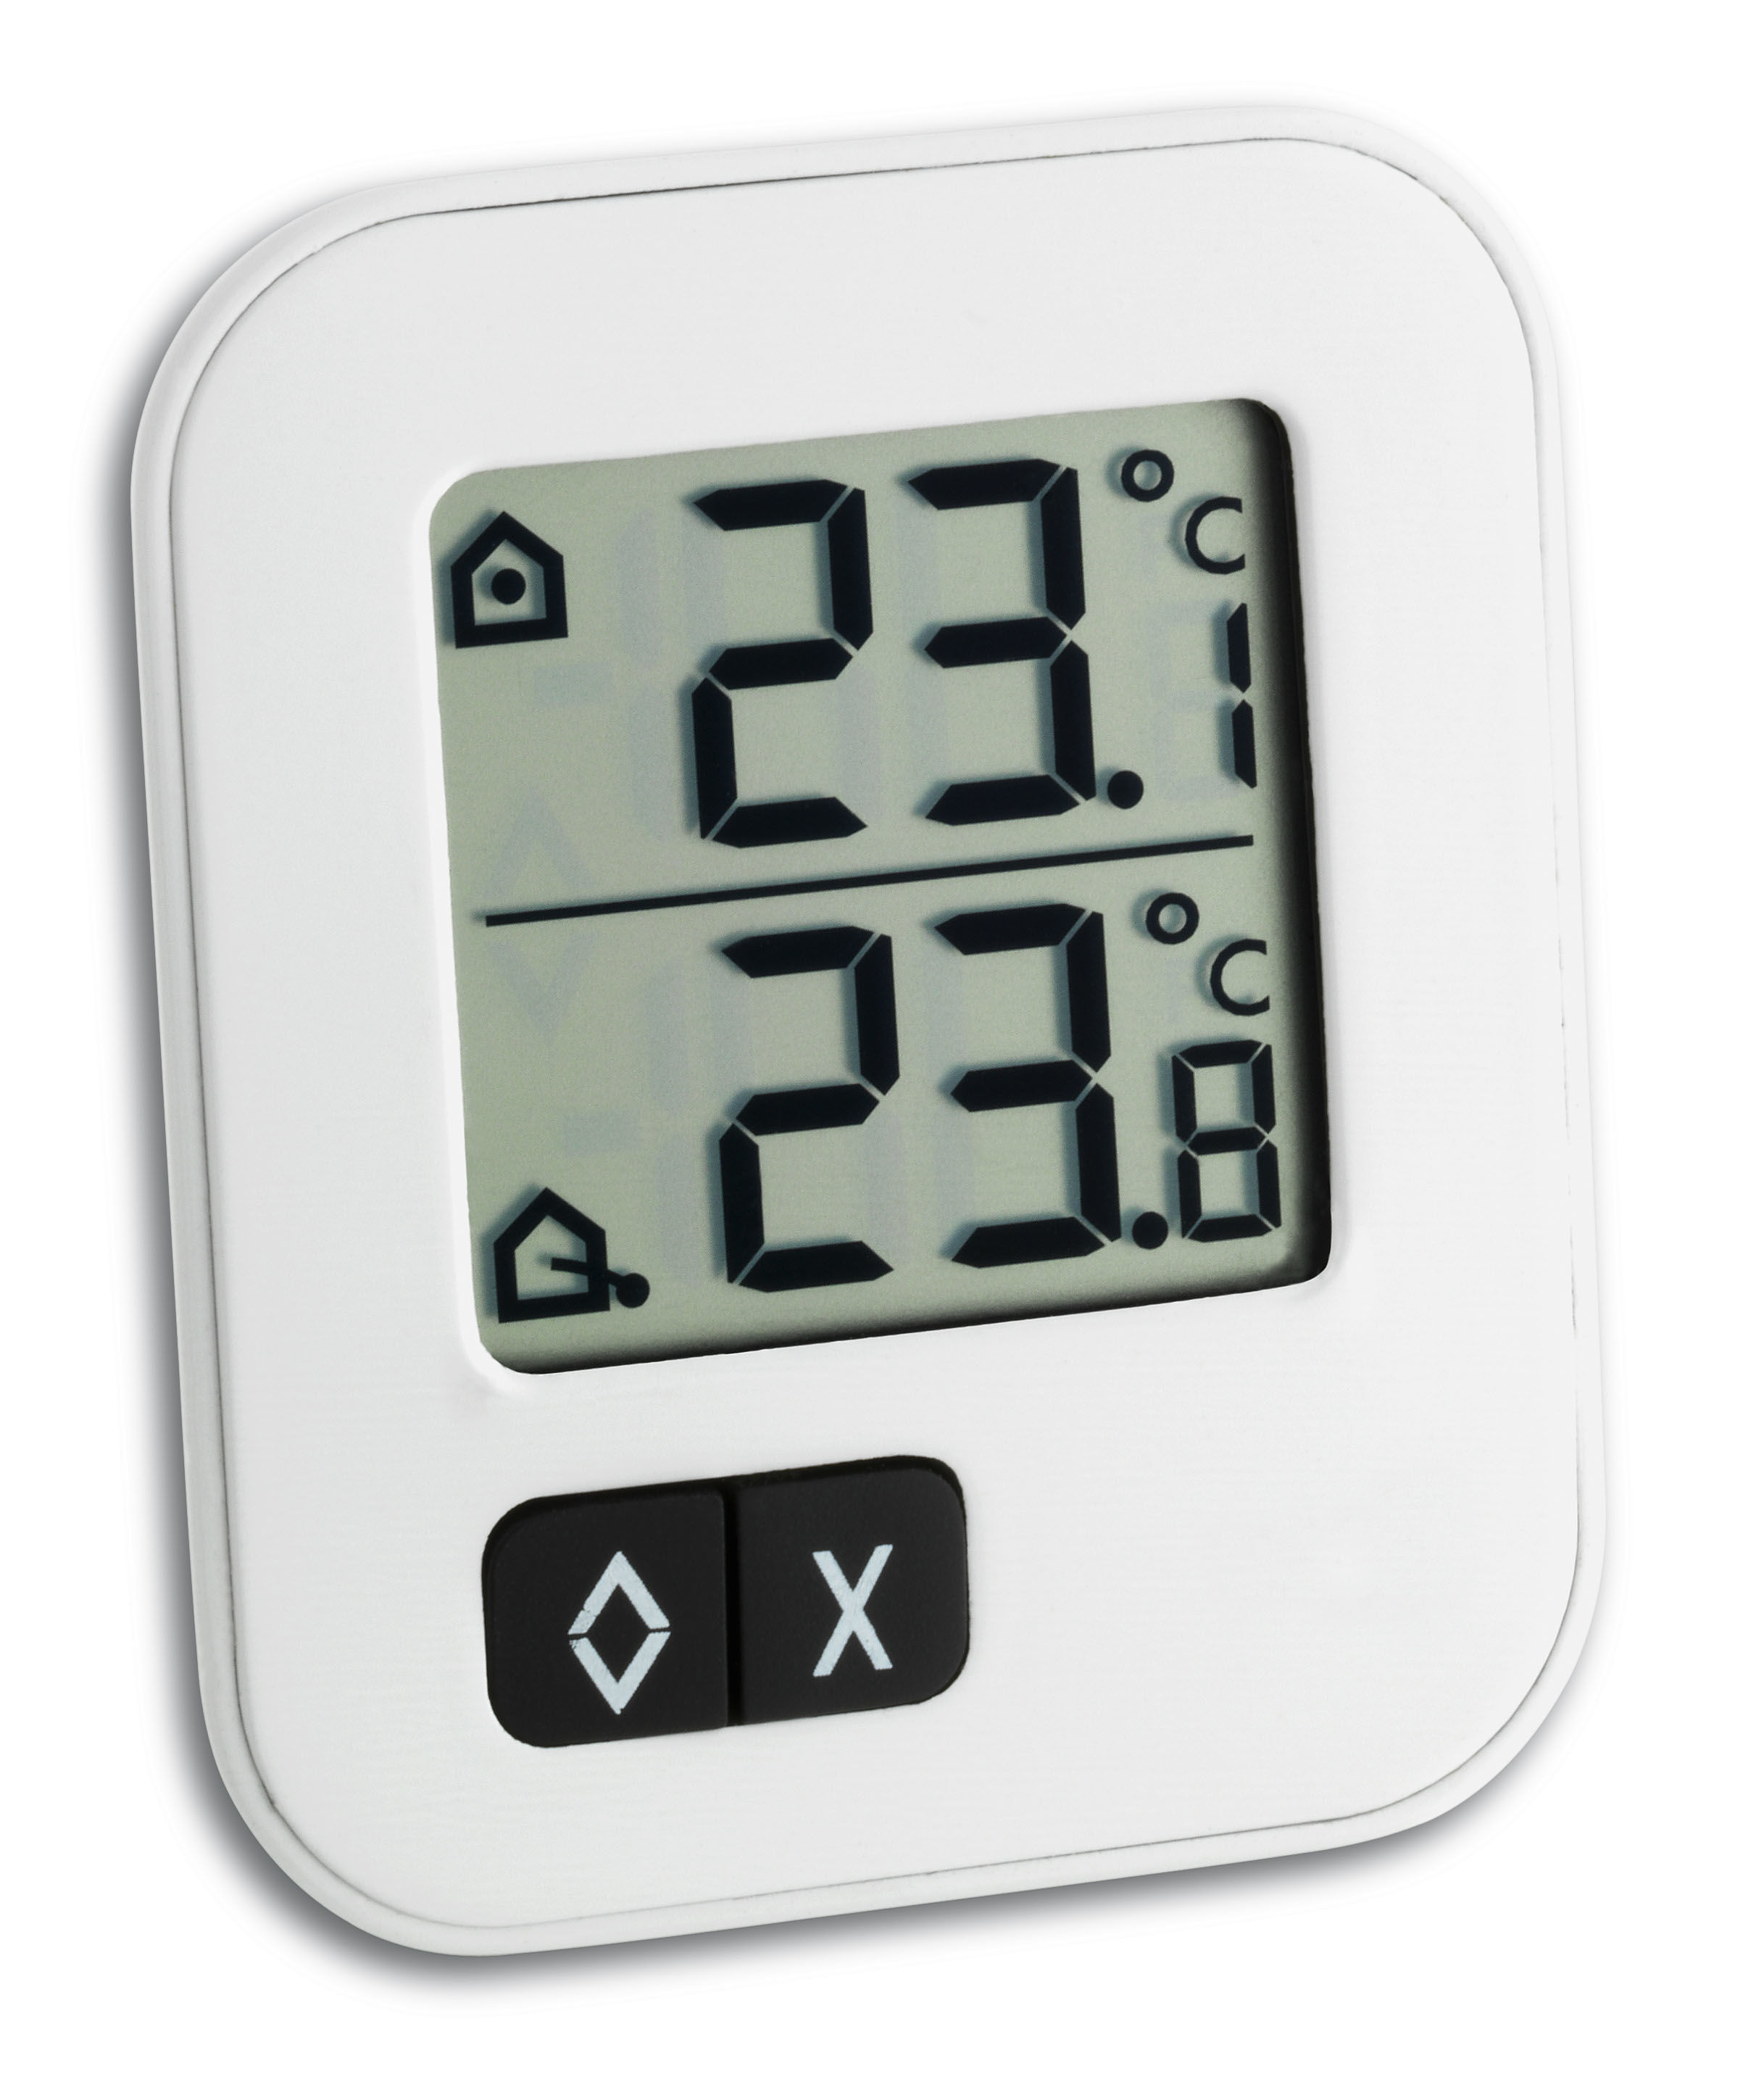 Tfa dostmann digitales max min thermometer for Thermometres exterieurs